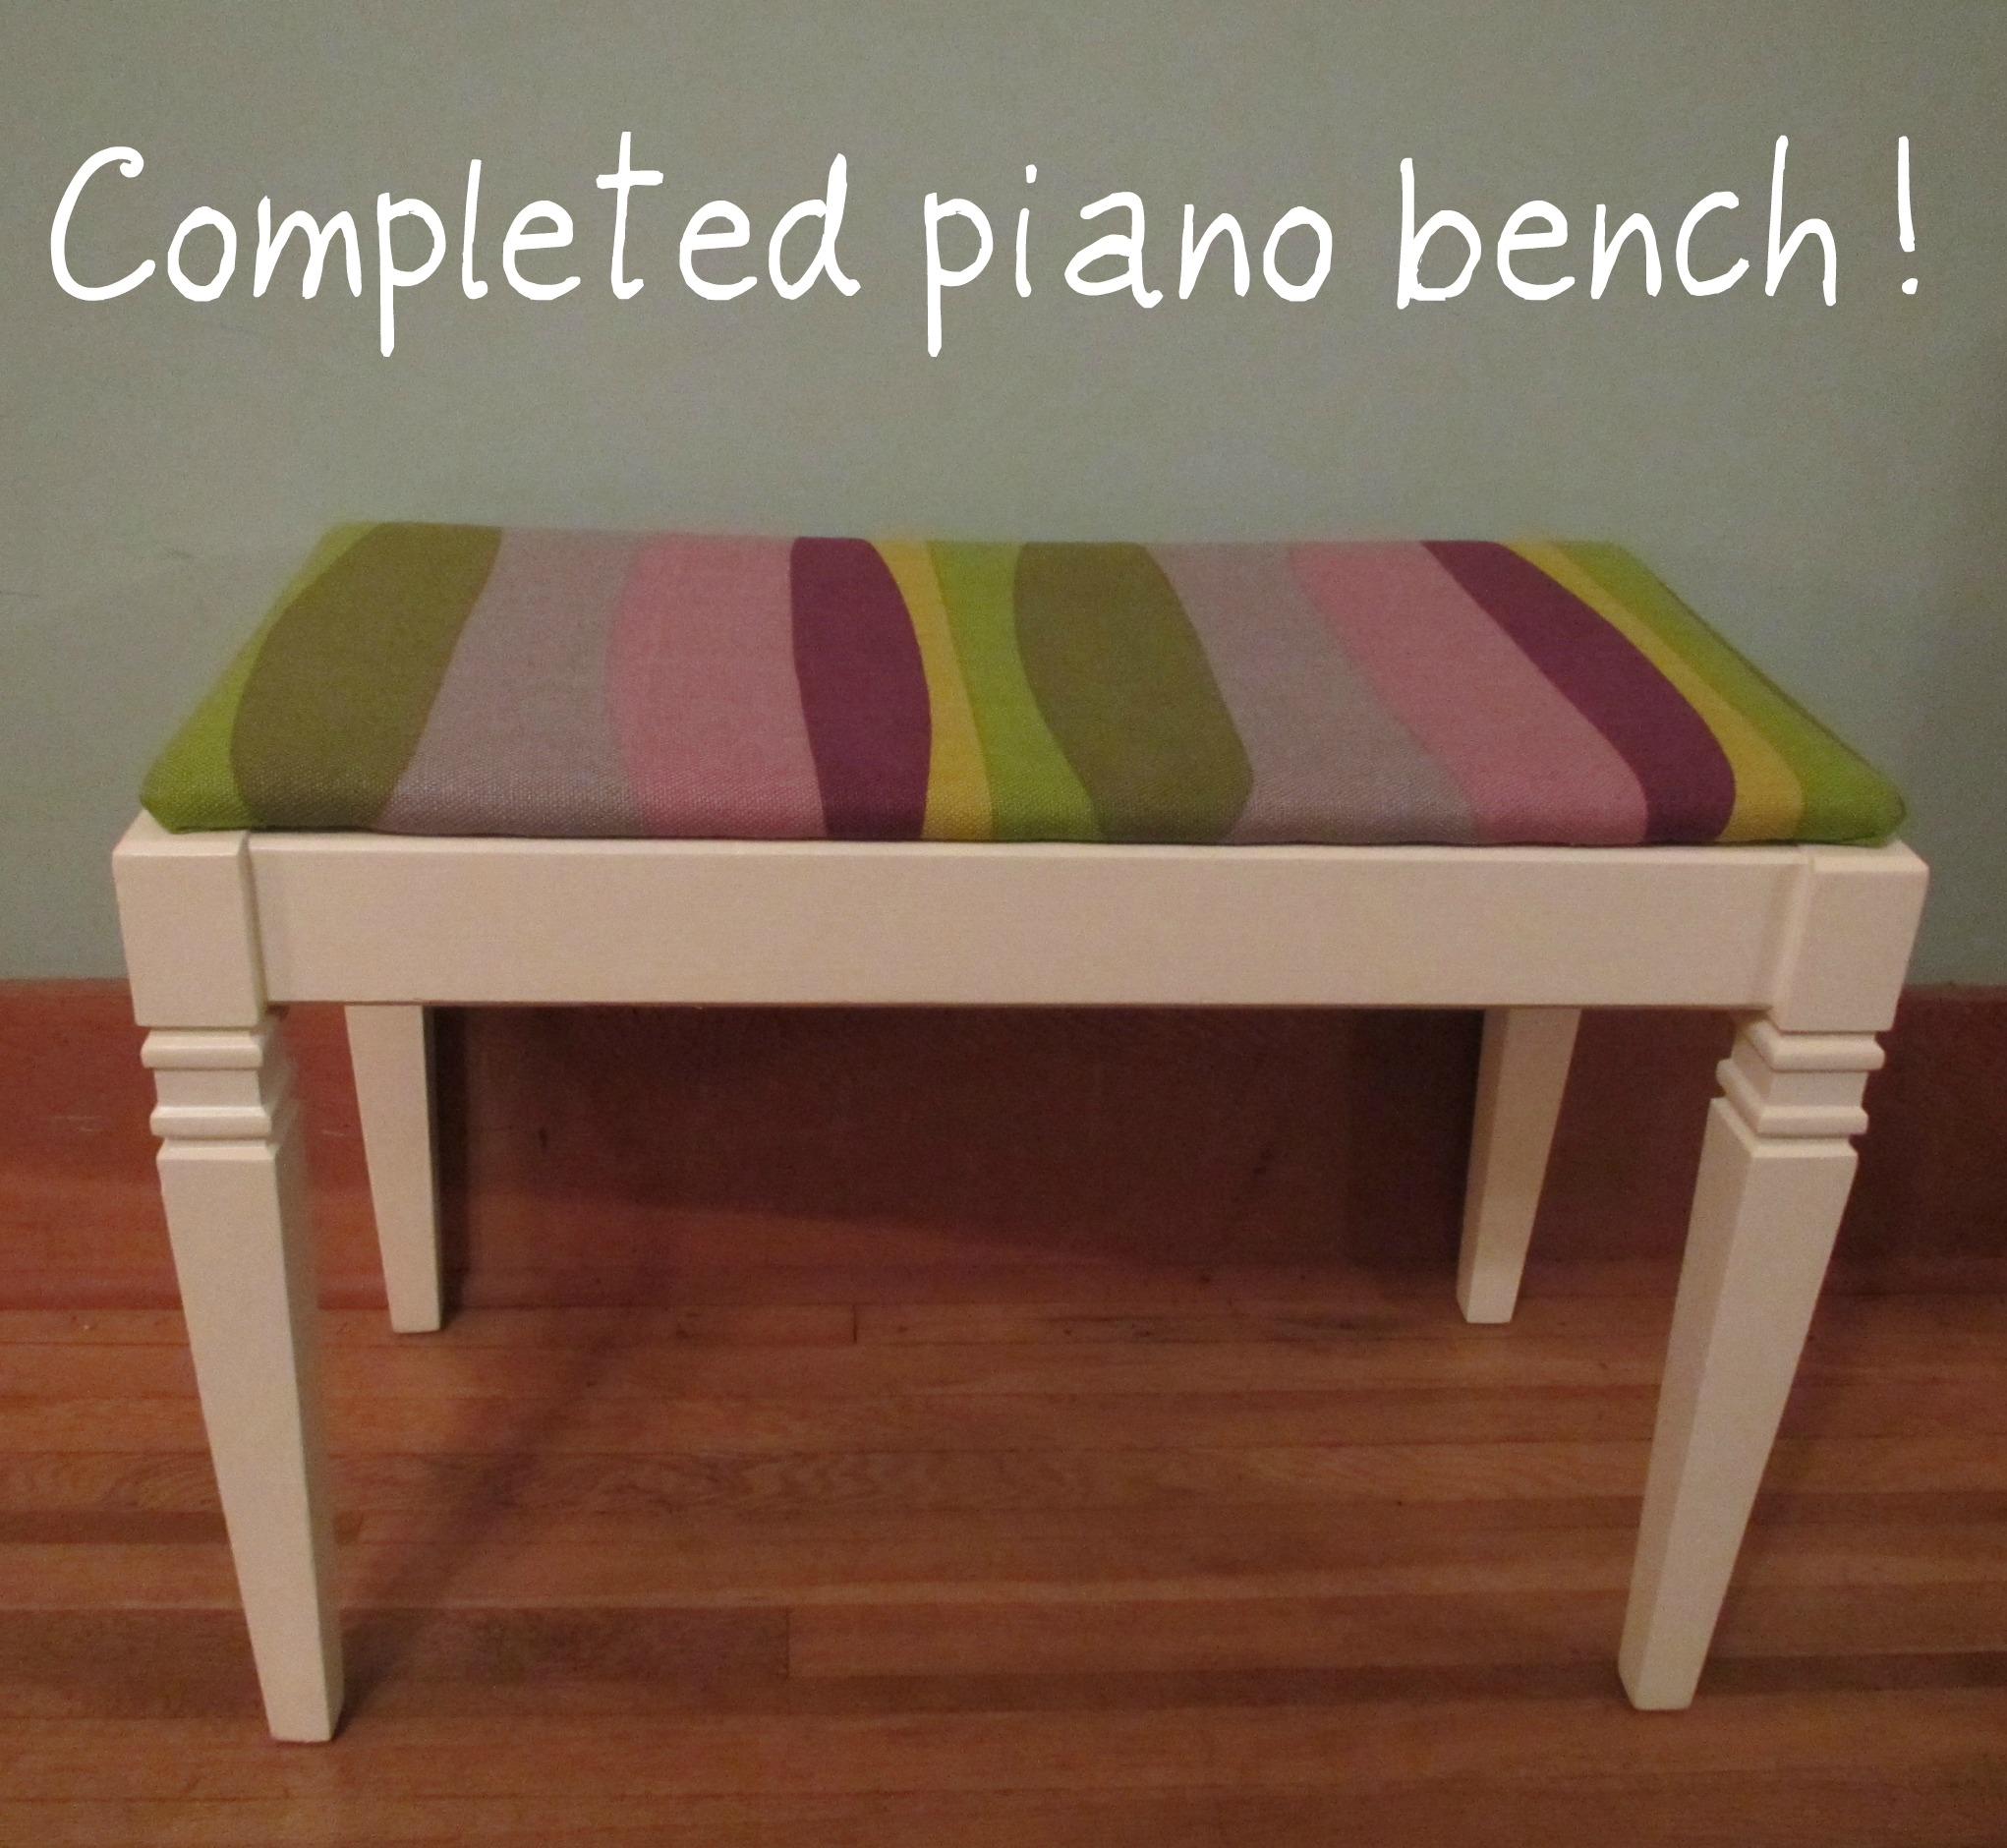 completed piano bench